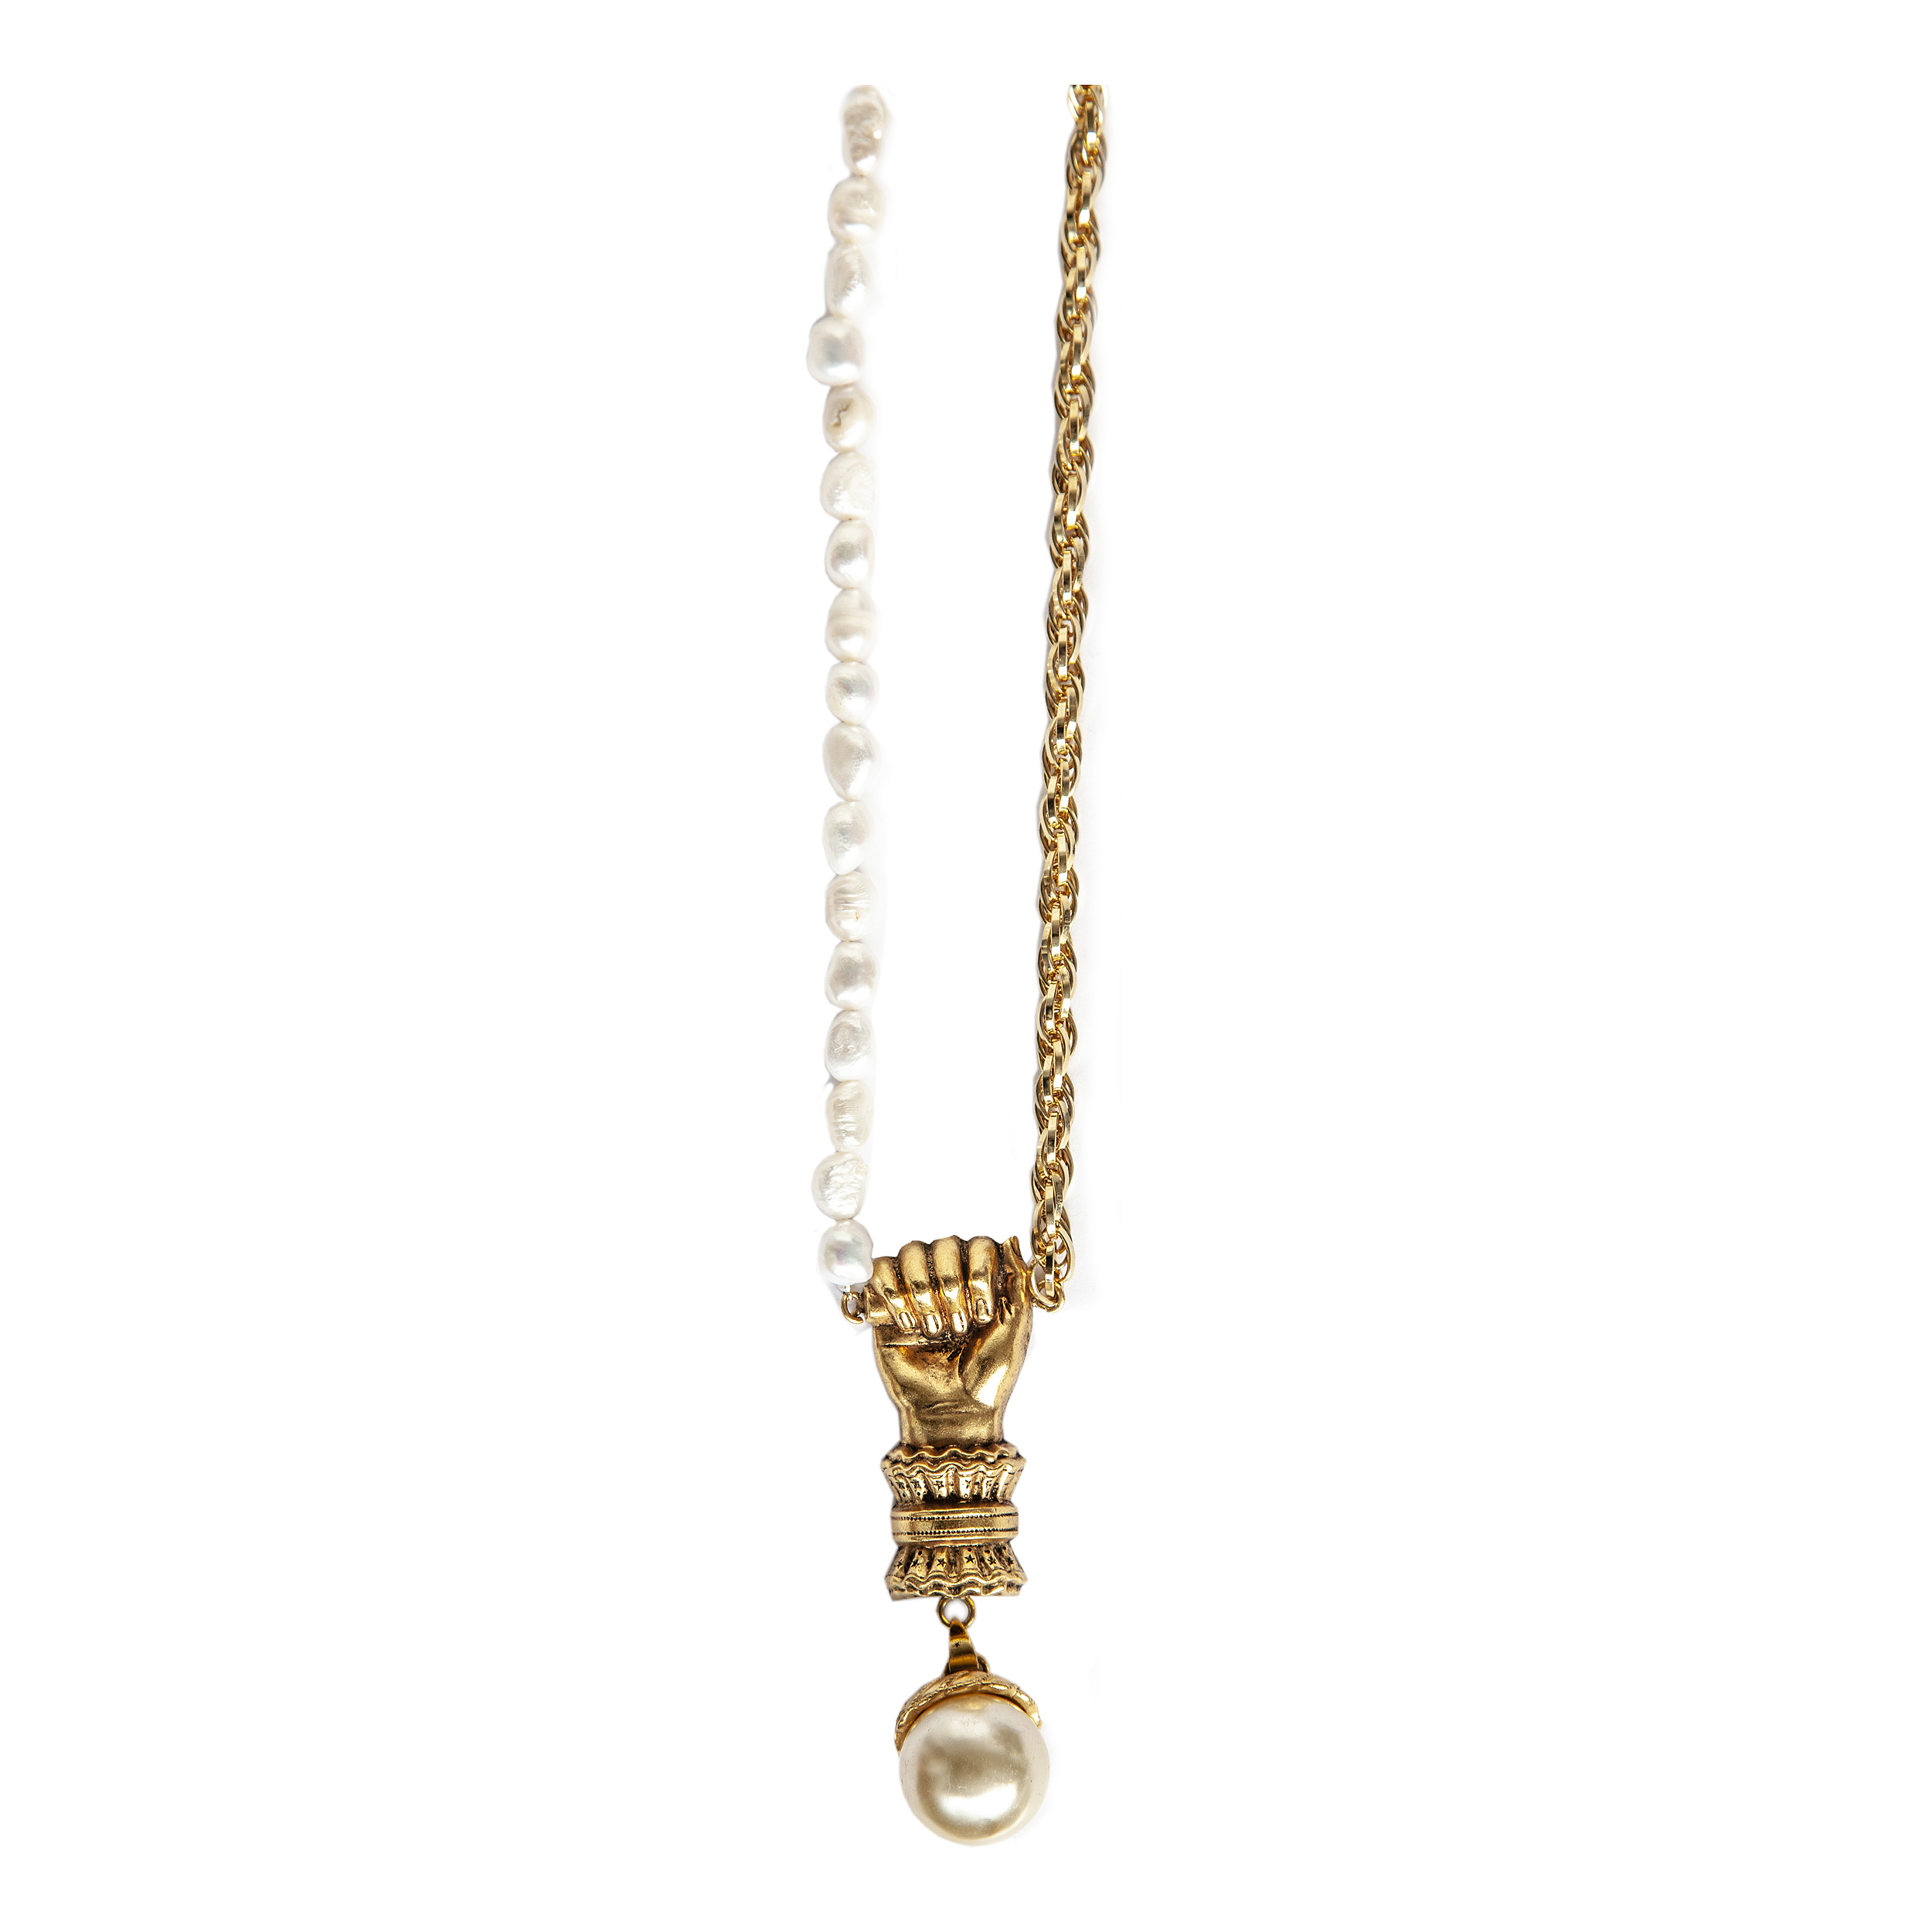 zoi Necklace - $250.00 AUD